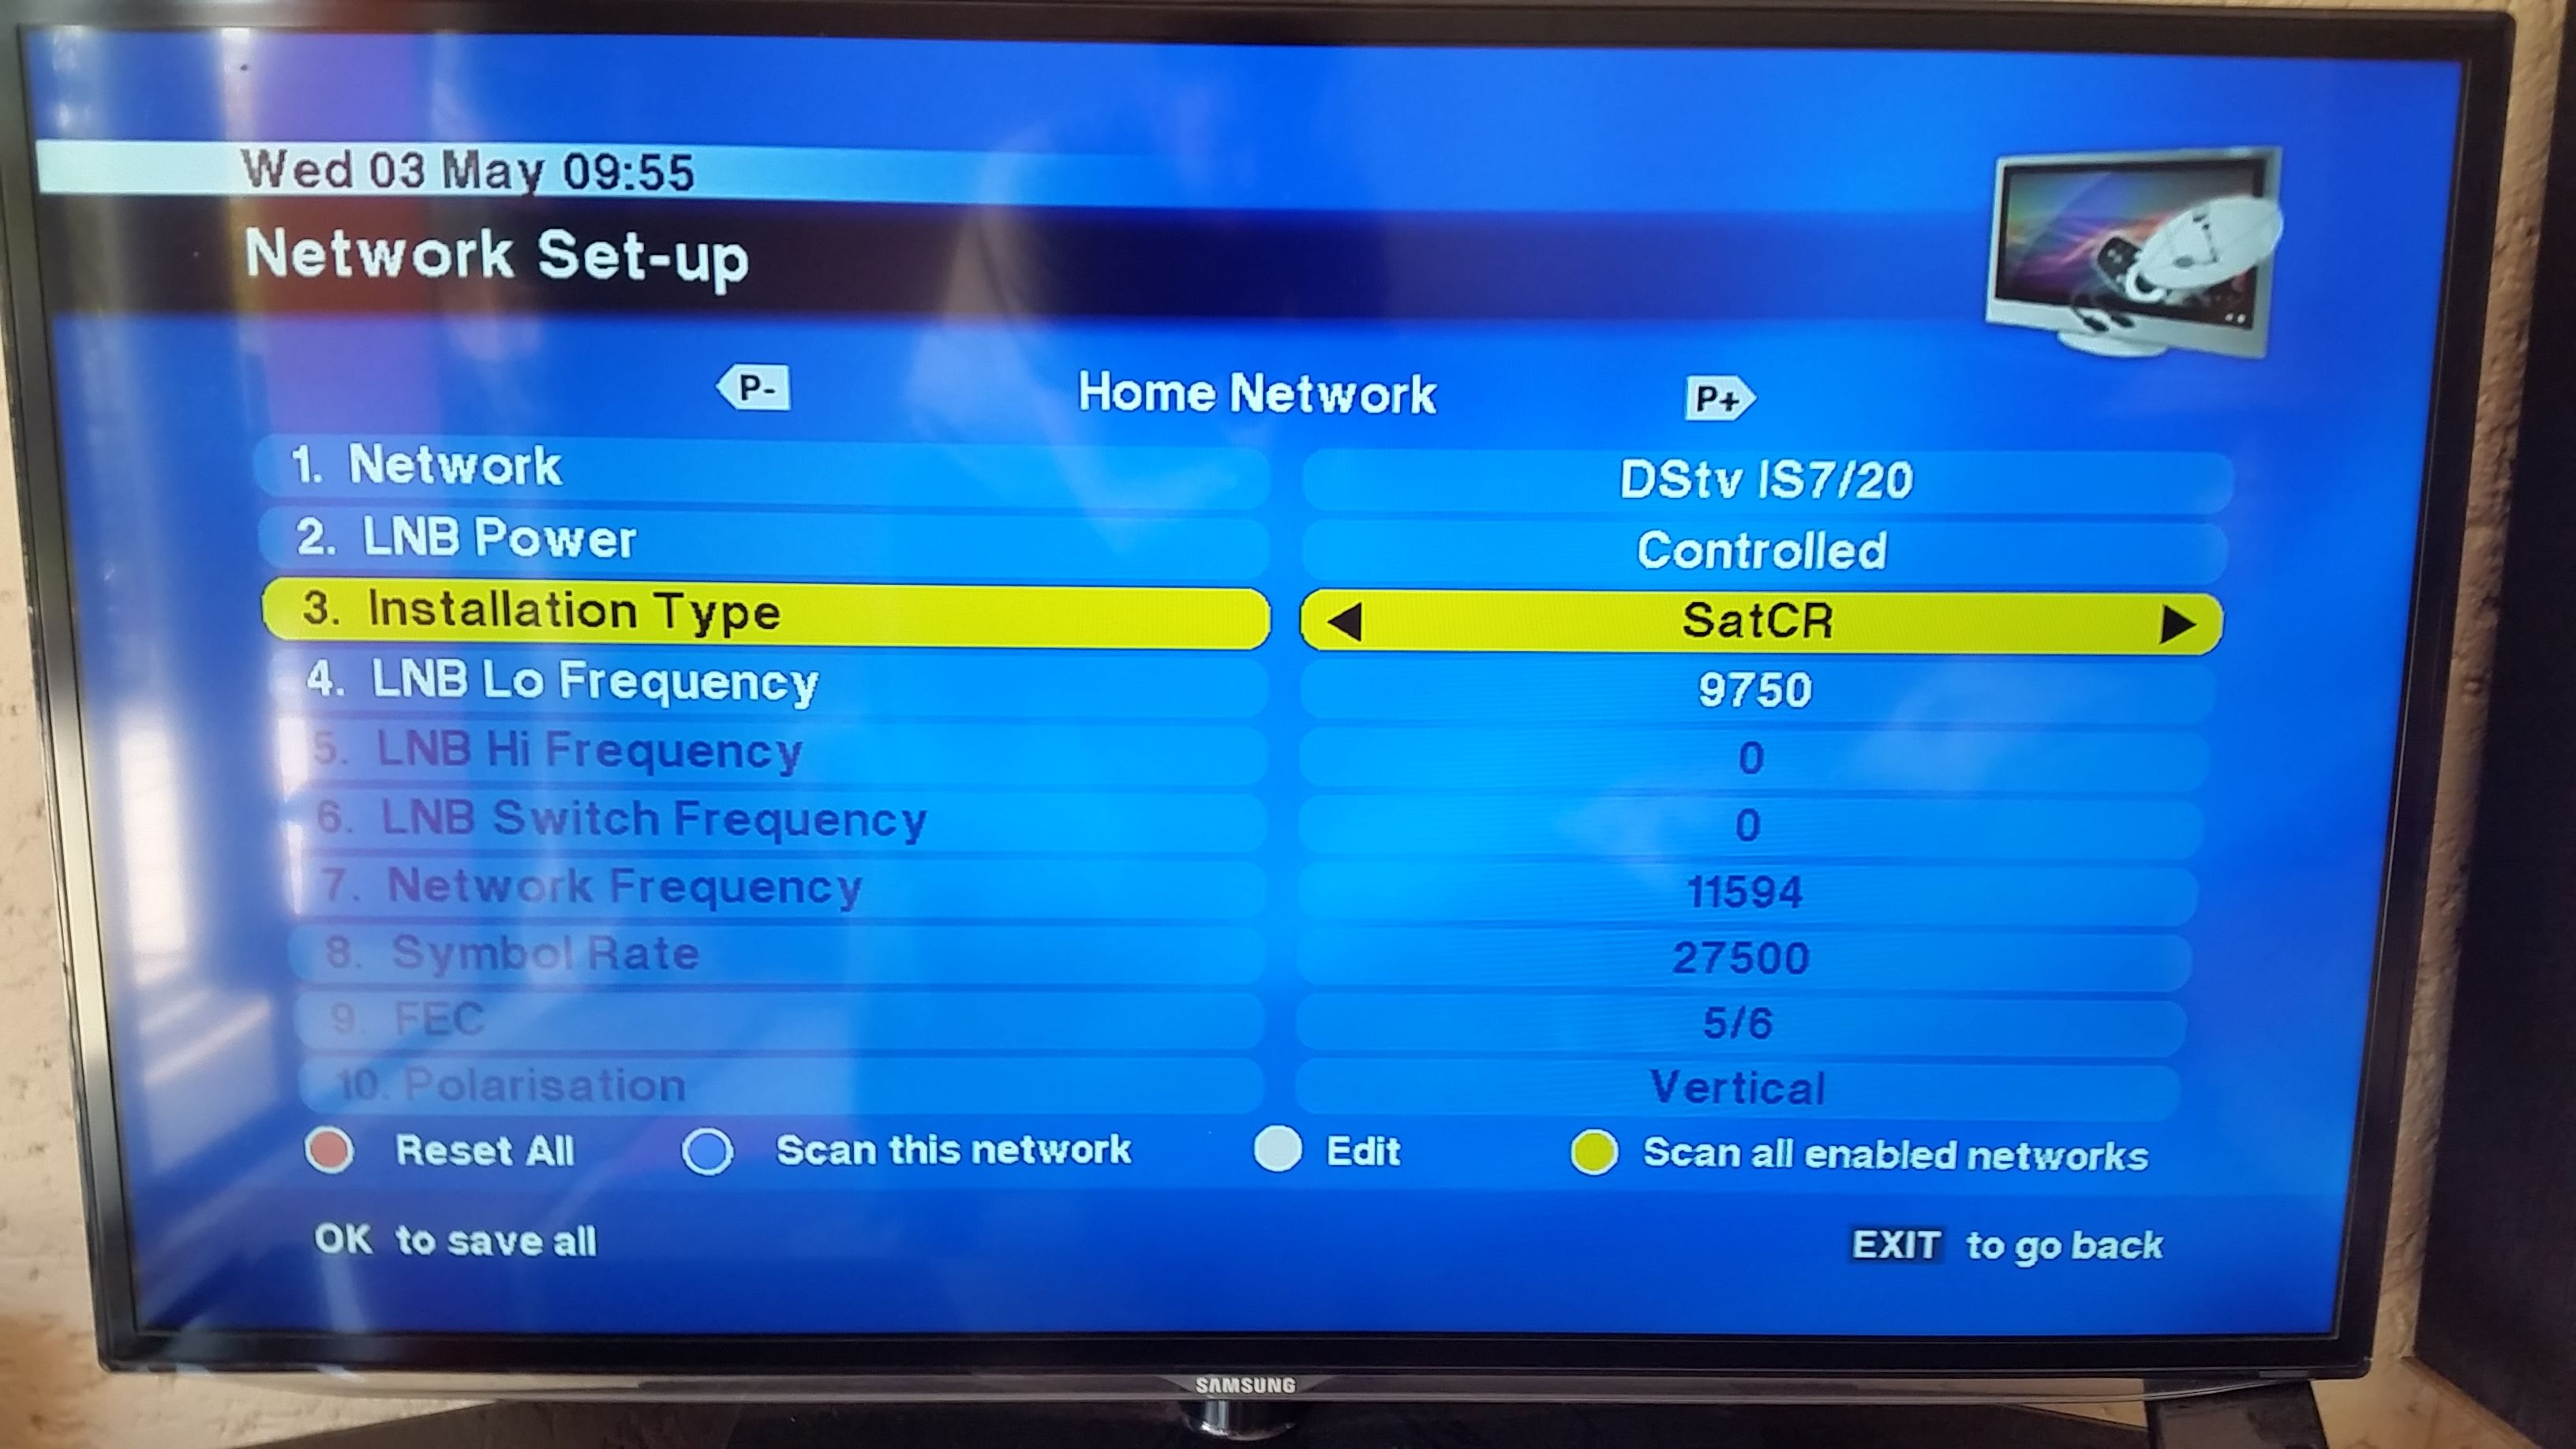 Dstv Smart Lnb 2x Hd Pvr 2ps Connection For Extraview Mybroadband Dish Network Wiring Diagram When I Took My Transfer Of Ownership Documents In The Technician Said That Will Have To Get A 2x4 Multiswitch R399 Connect It Way Want